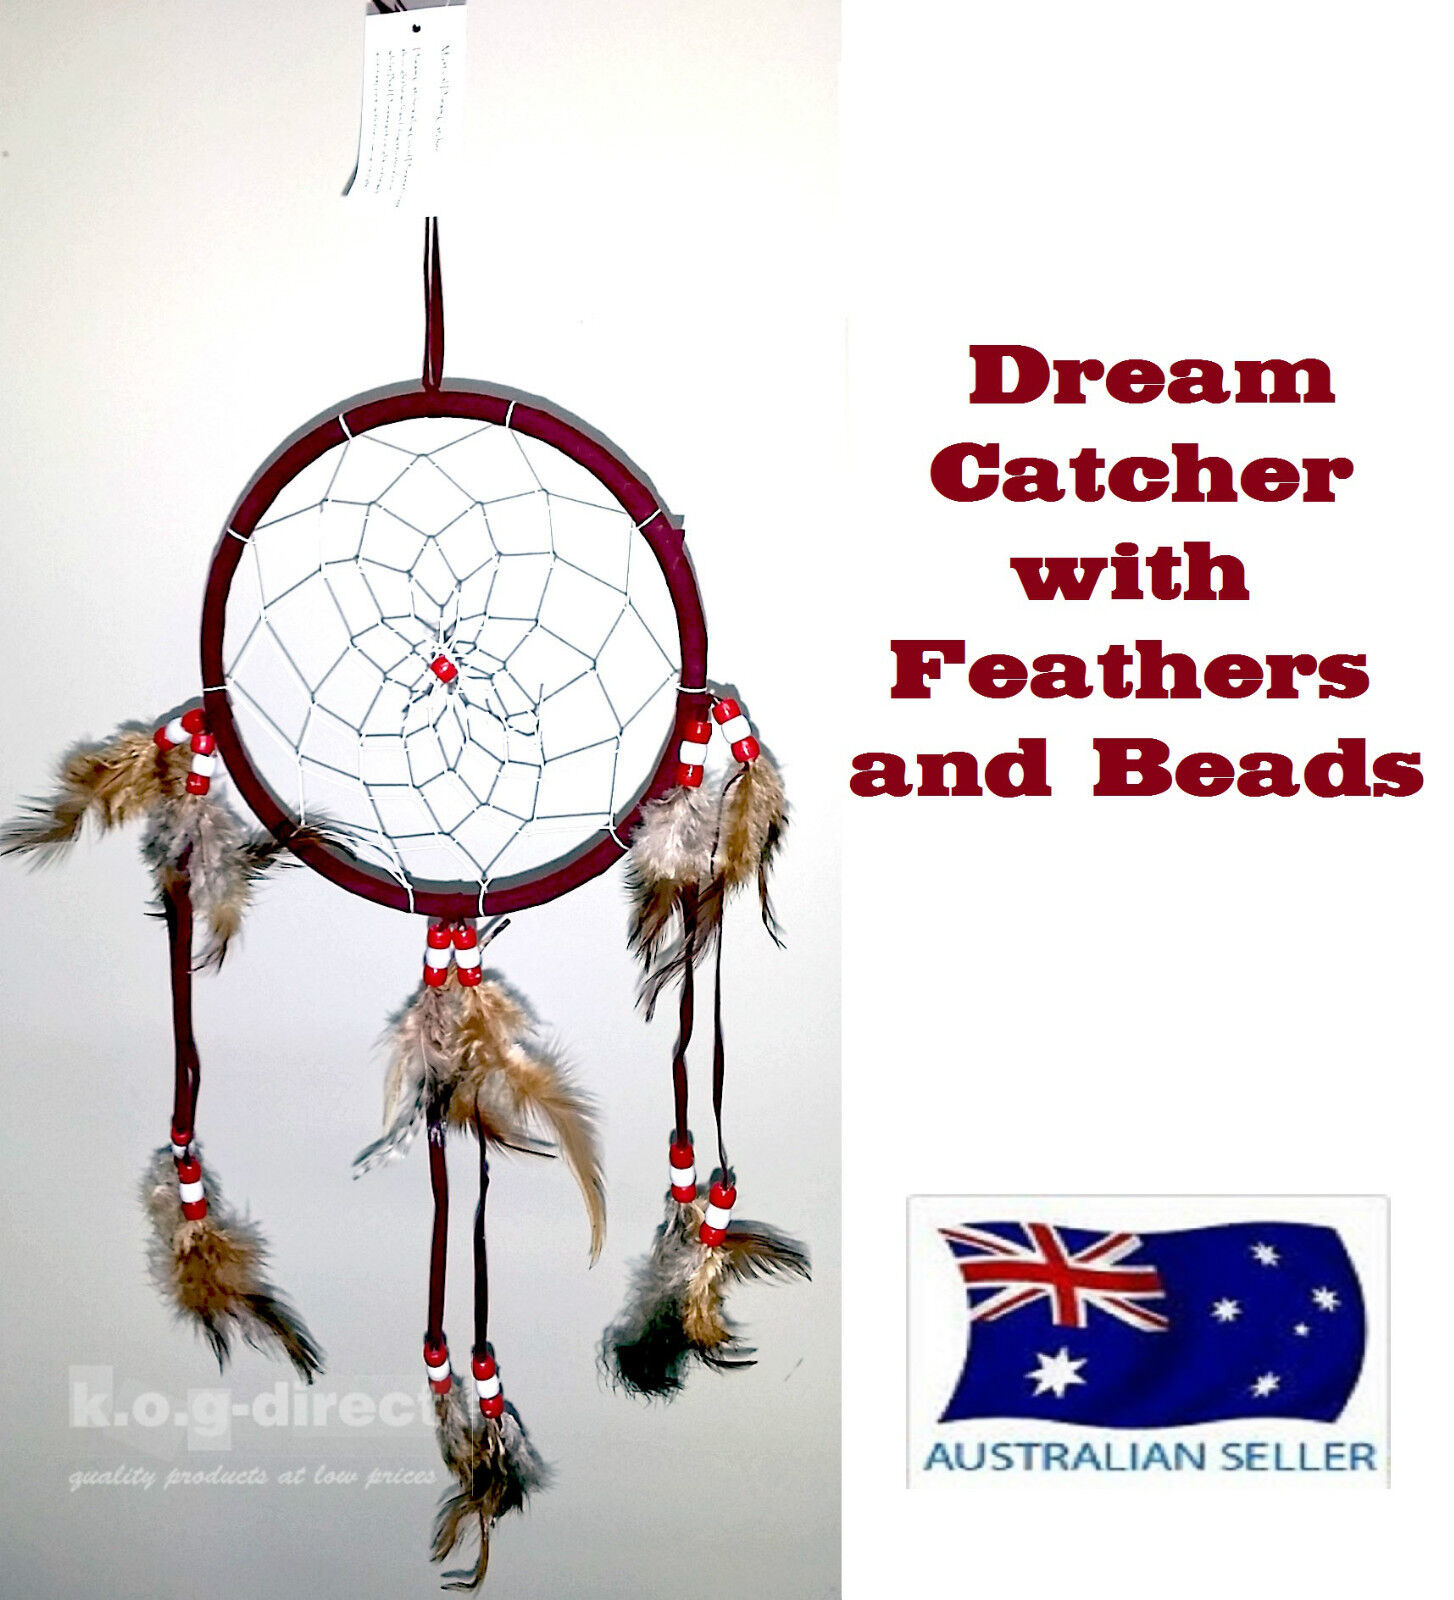 Dream catcher native american indian style dreamcatcher for Dreamcatcher beads meaning